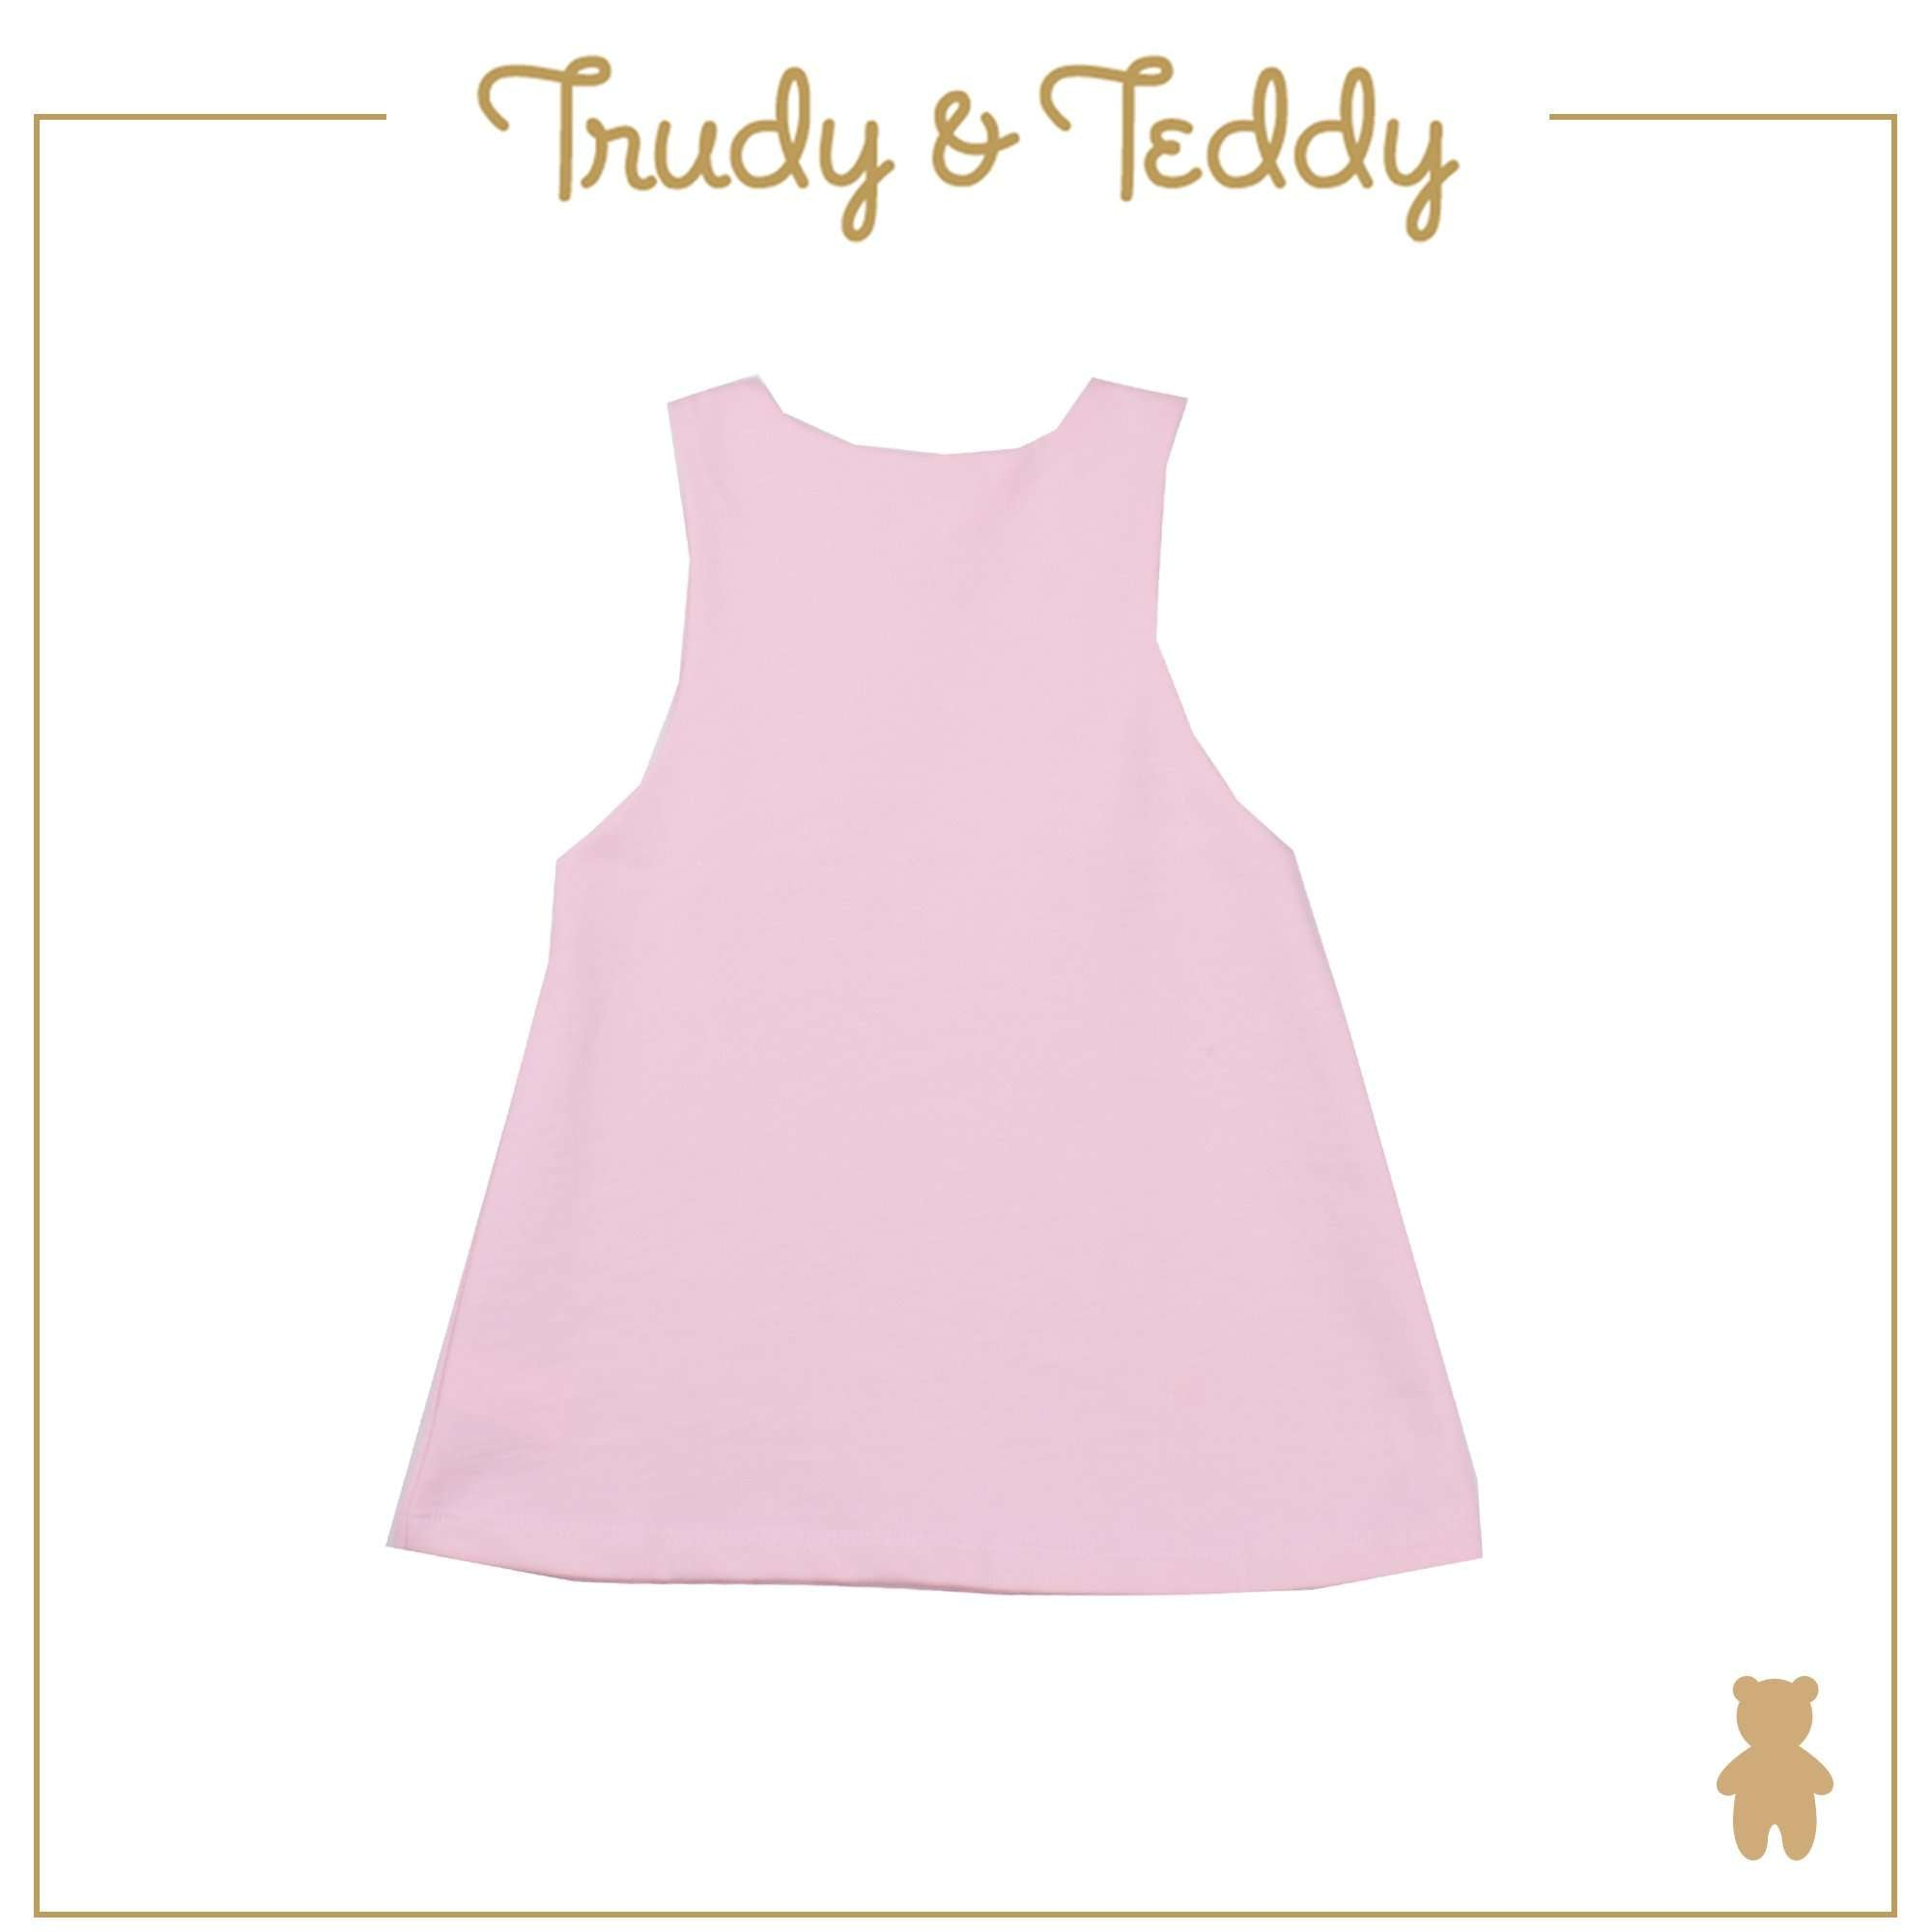 Trudy & Teddy Baby to Kid Girl Short Sleeve Pinafore Suit - Light Pink T925103-4710-P1 : Buy Trudy & Teddy online at CMG.MY